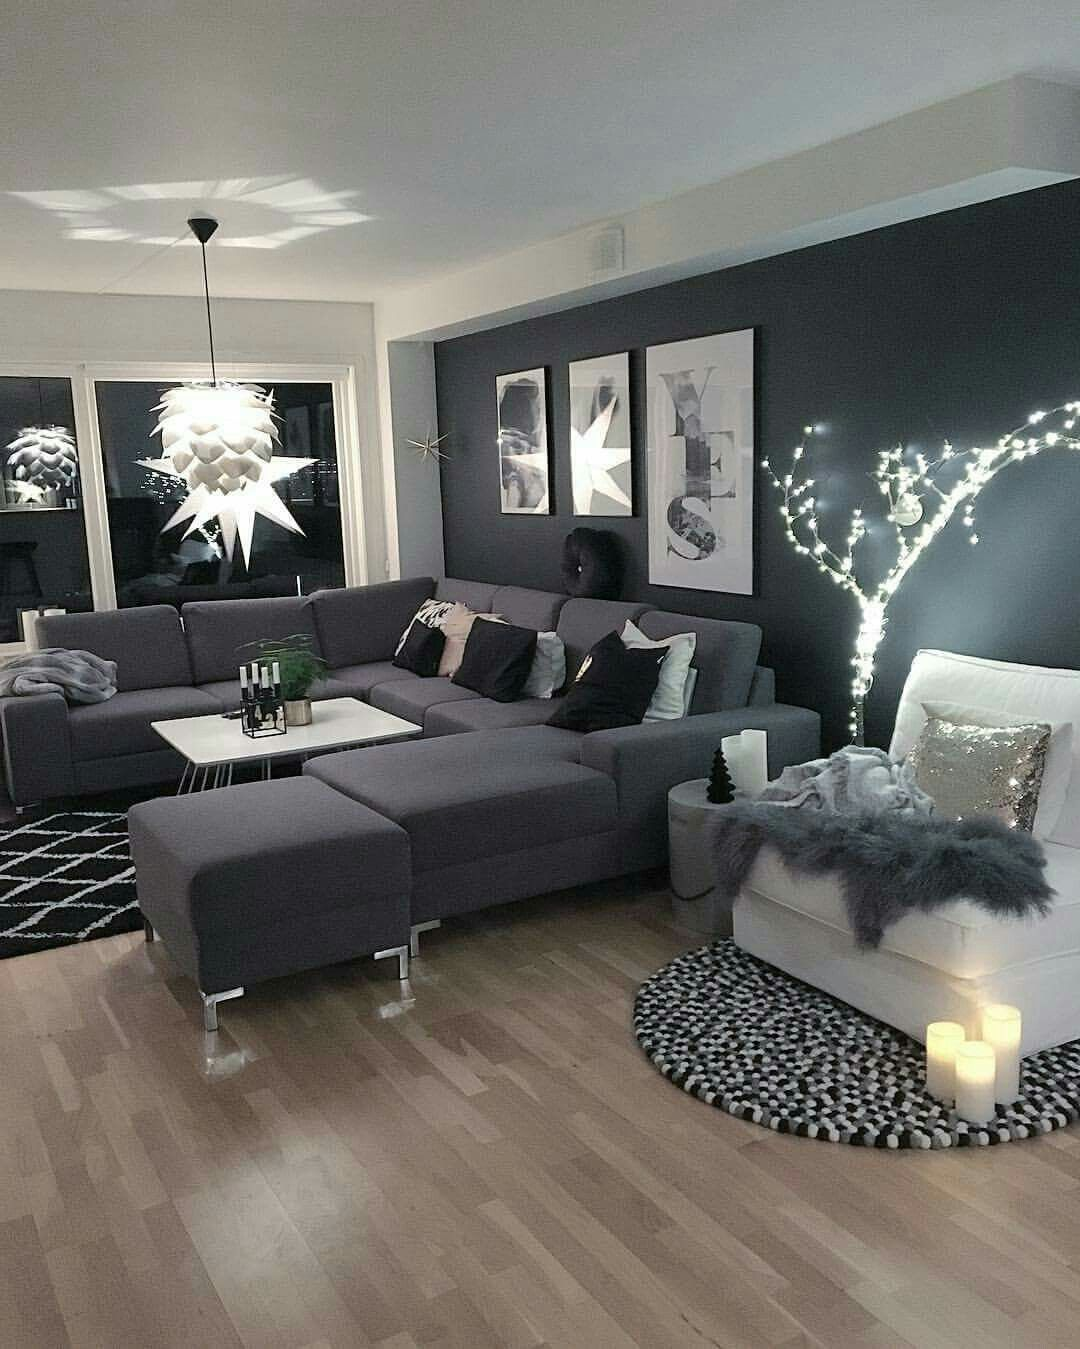 10 Black And Grey Living Room Ideas 2020 Neutral Aspect Small